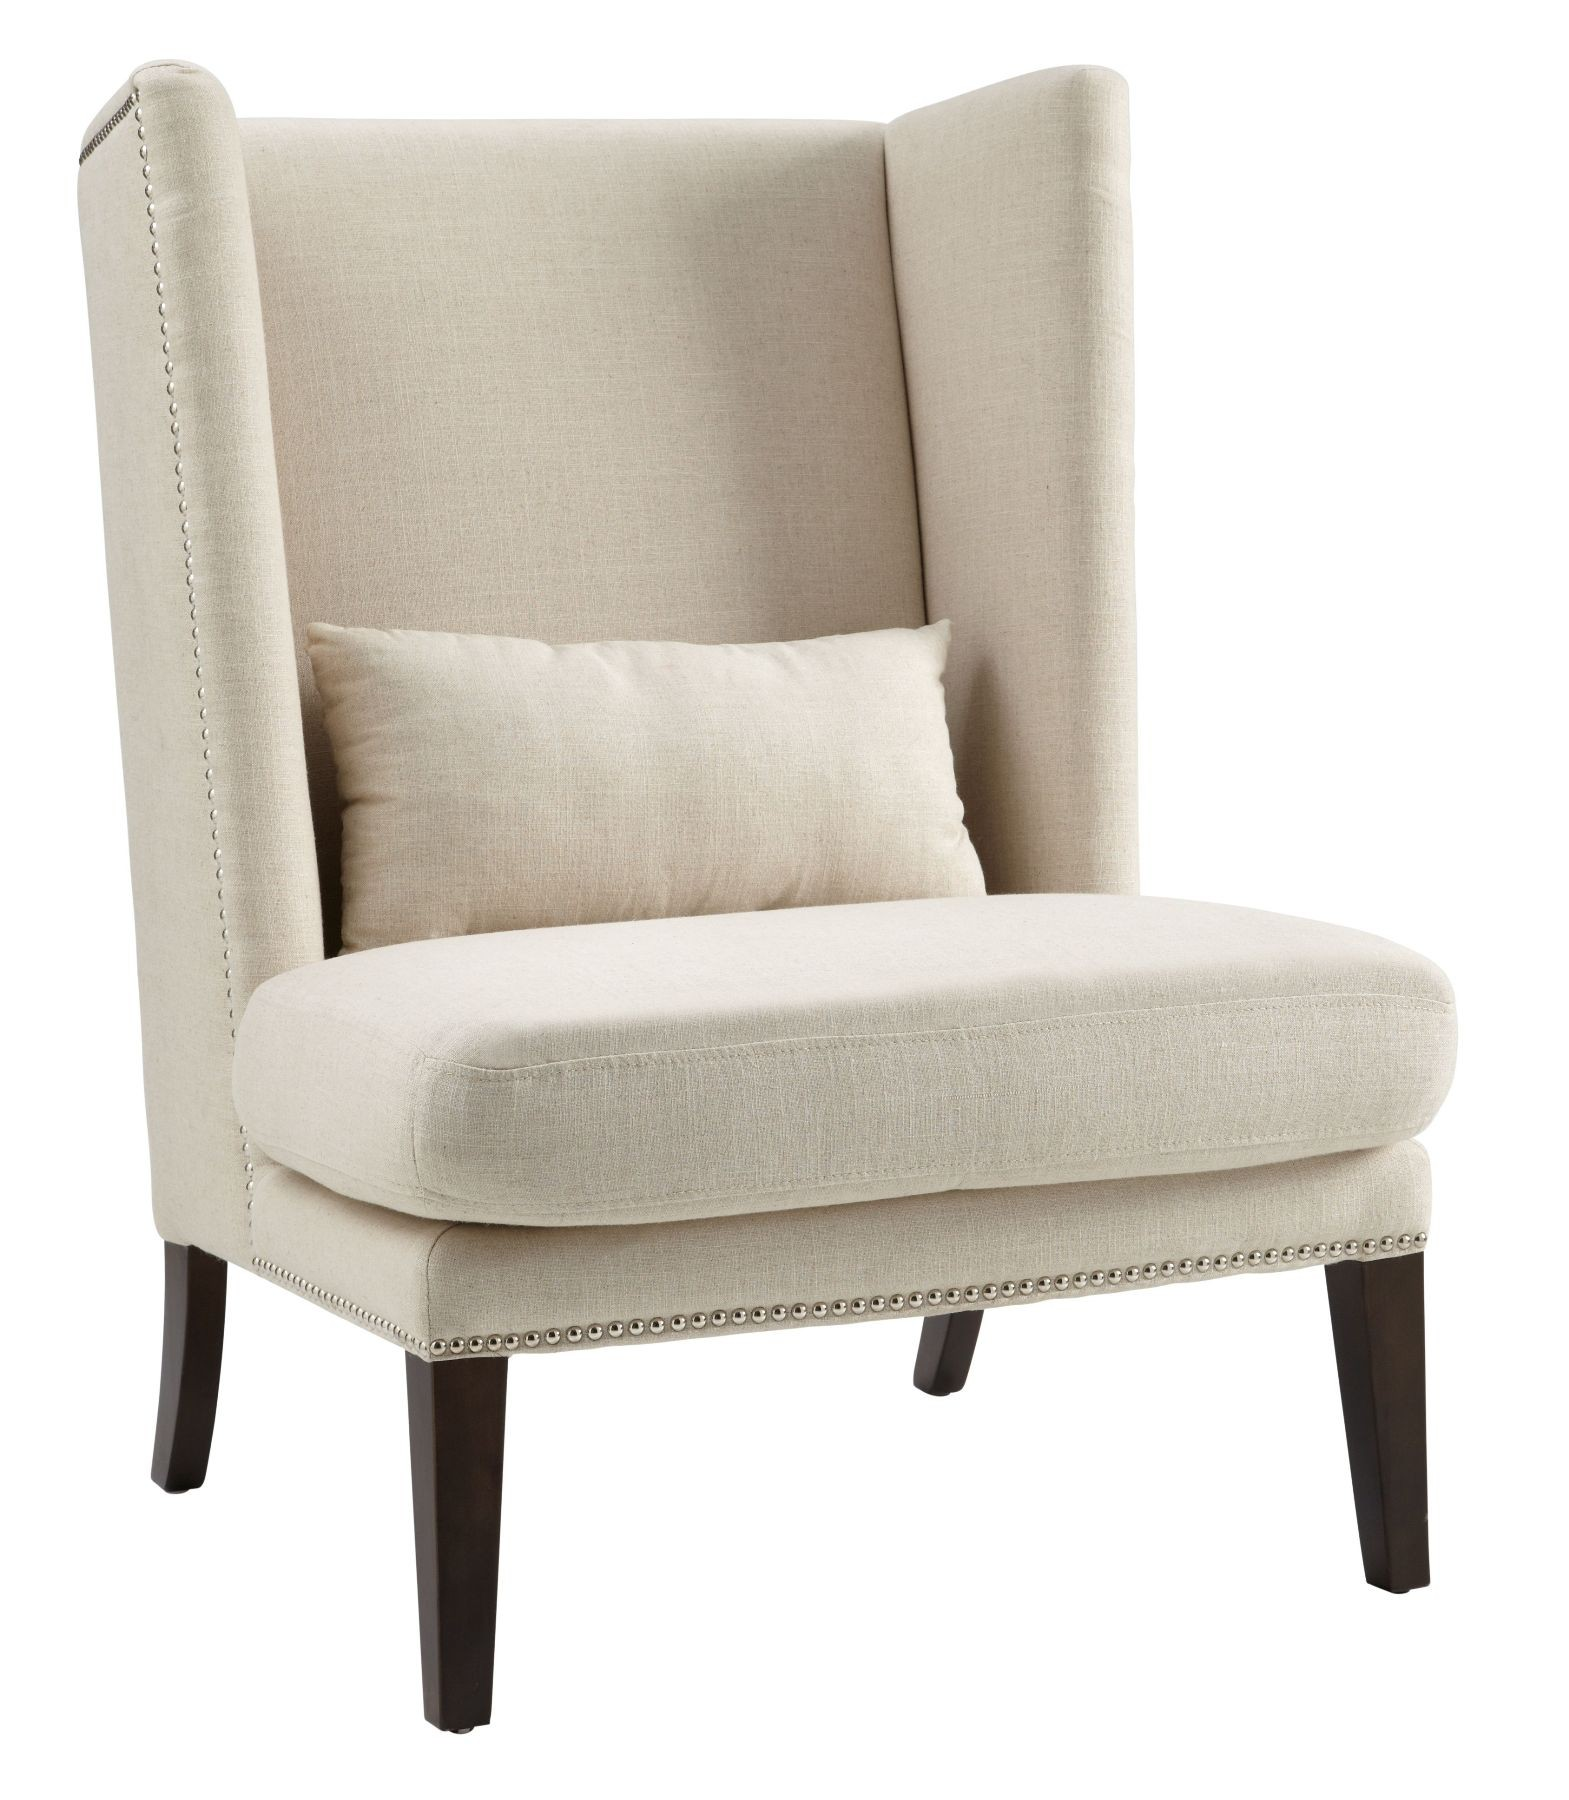 Wing Chair Malibu Linen Fabric Wing Chair From Sunpan 12996